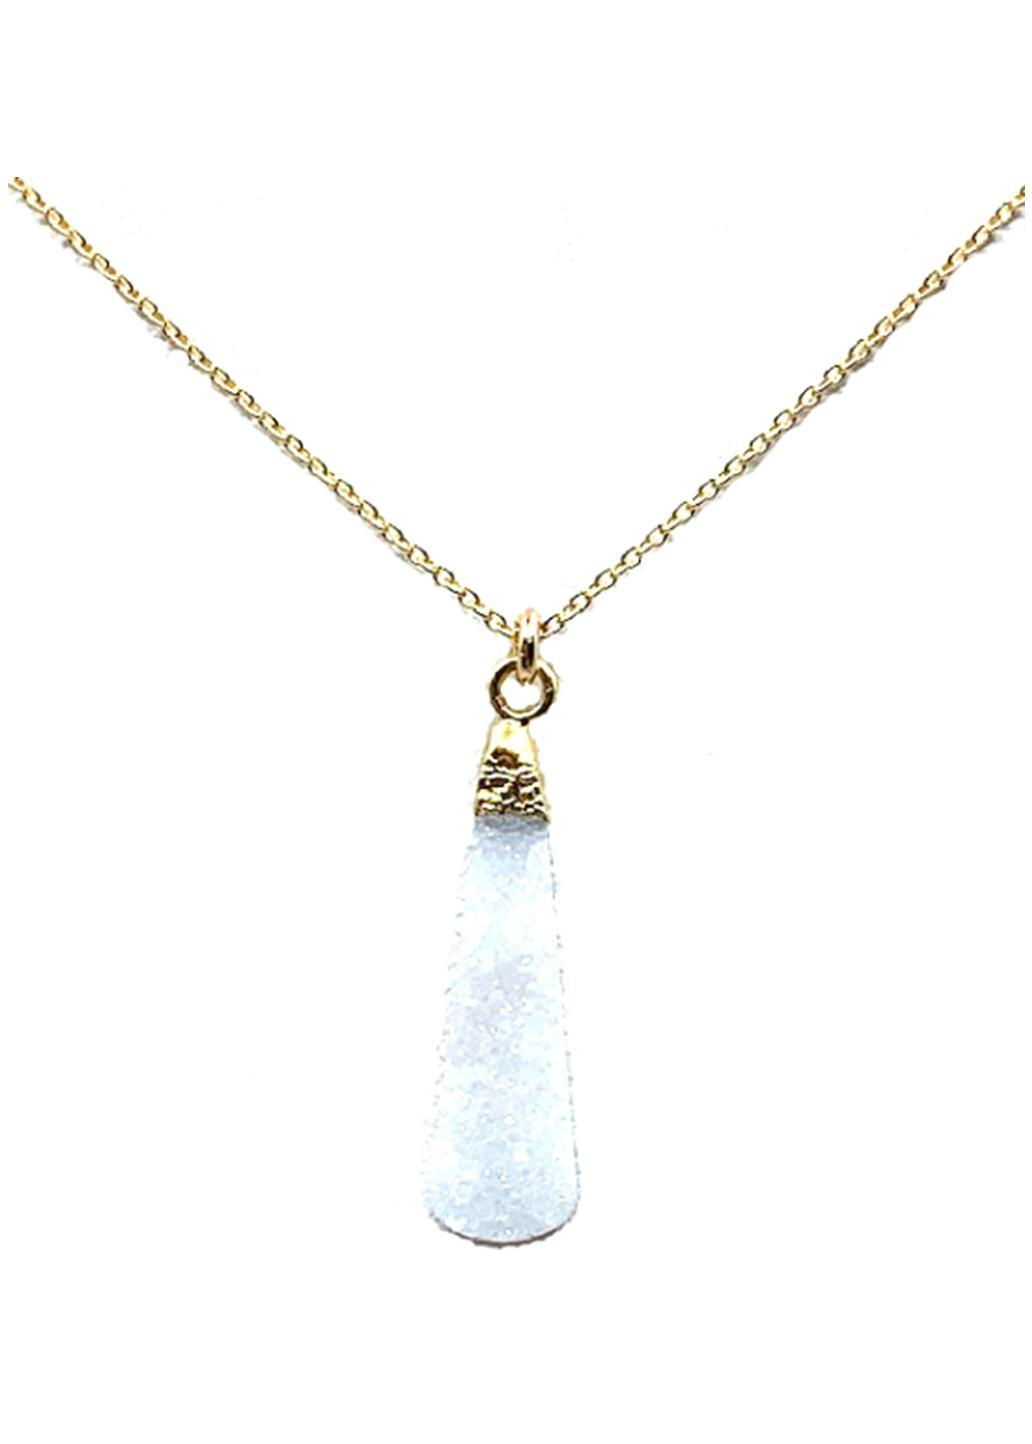 Long Druzy Teardrop Necklace on 14kt Gold Fill Chain: White Druzy (NGCP794DZW) Necklaces athenadesigns Default Title